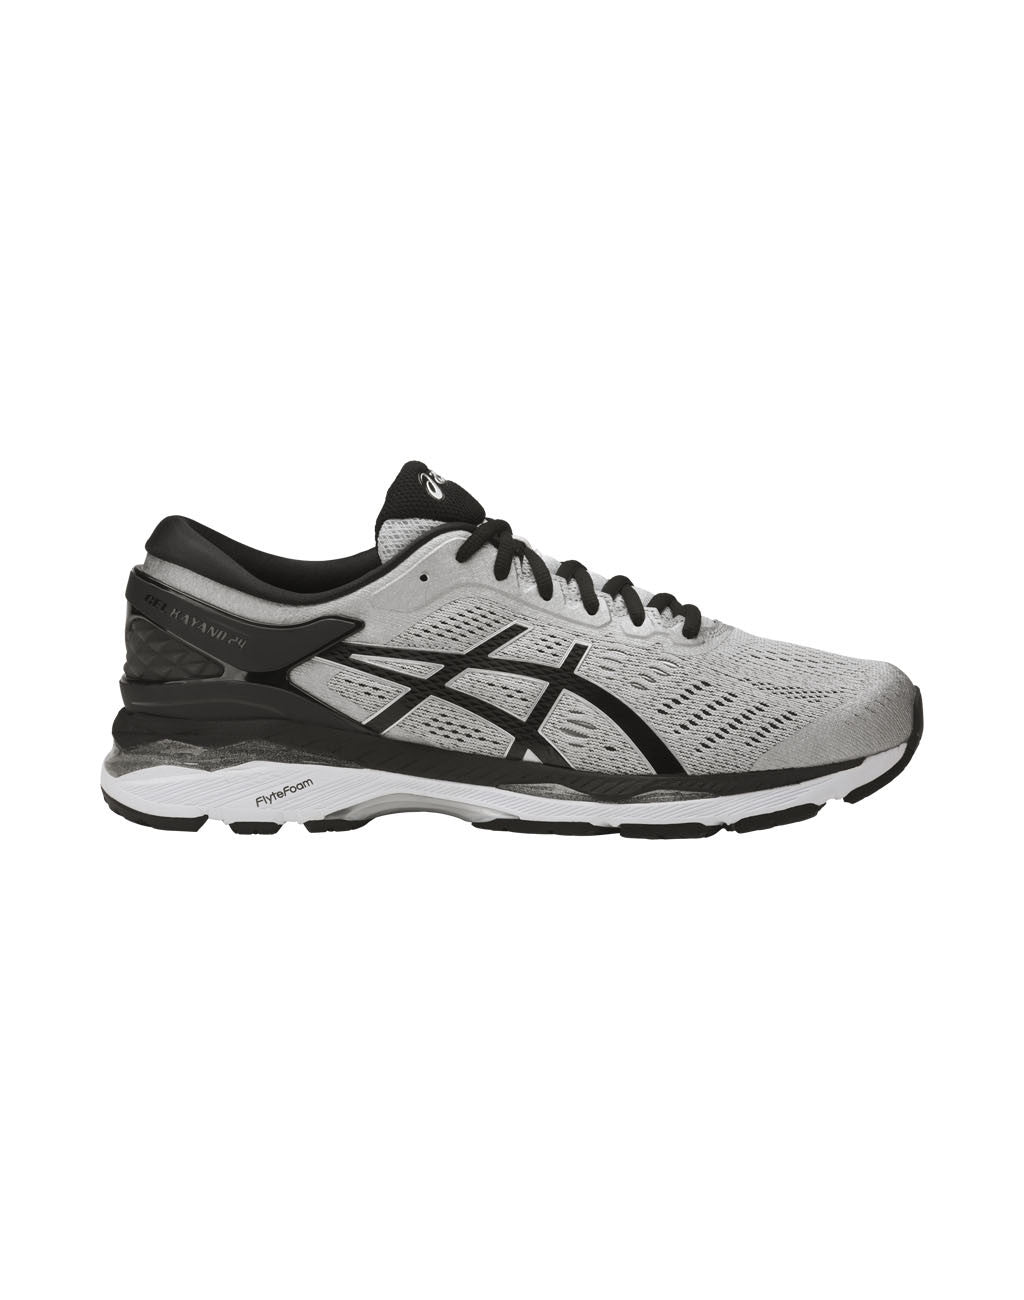 ASICS GEL-Kayano 24 (Wide - 2E) (Men's)6_master_image